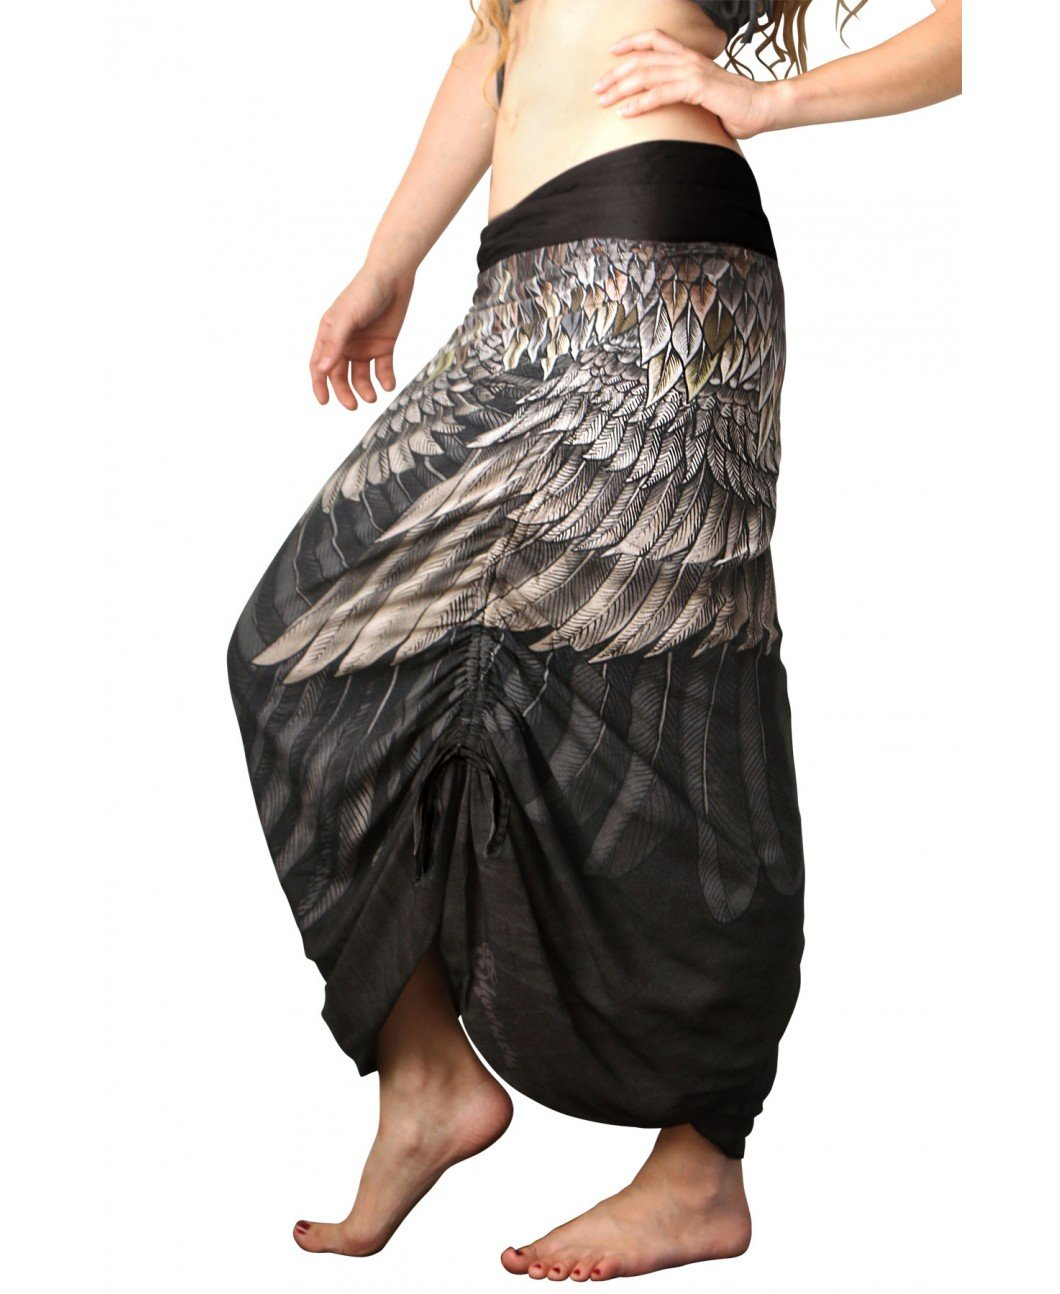 Shovava Brown & Black Hand Painted & Printed Long Feather Hippies Summer Beach Skirt by Shovava (Image #3)